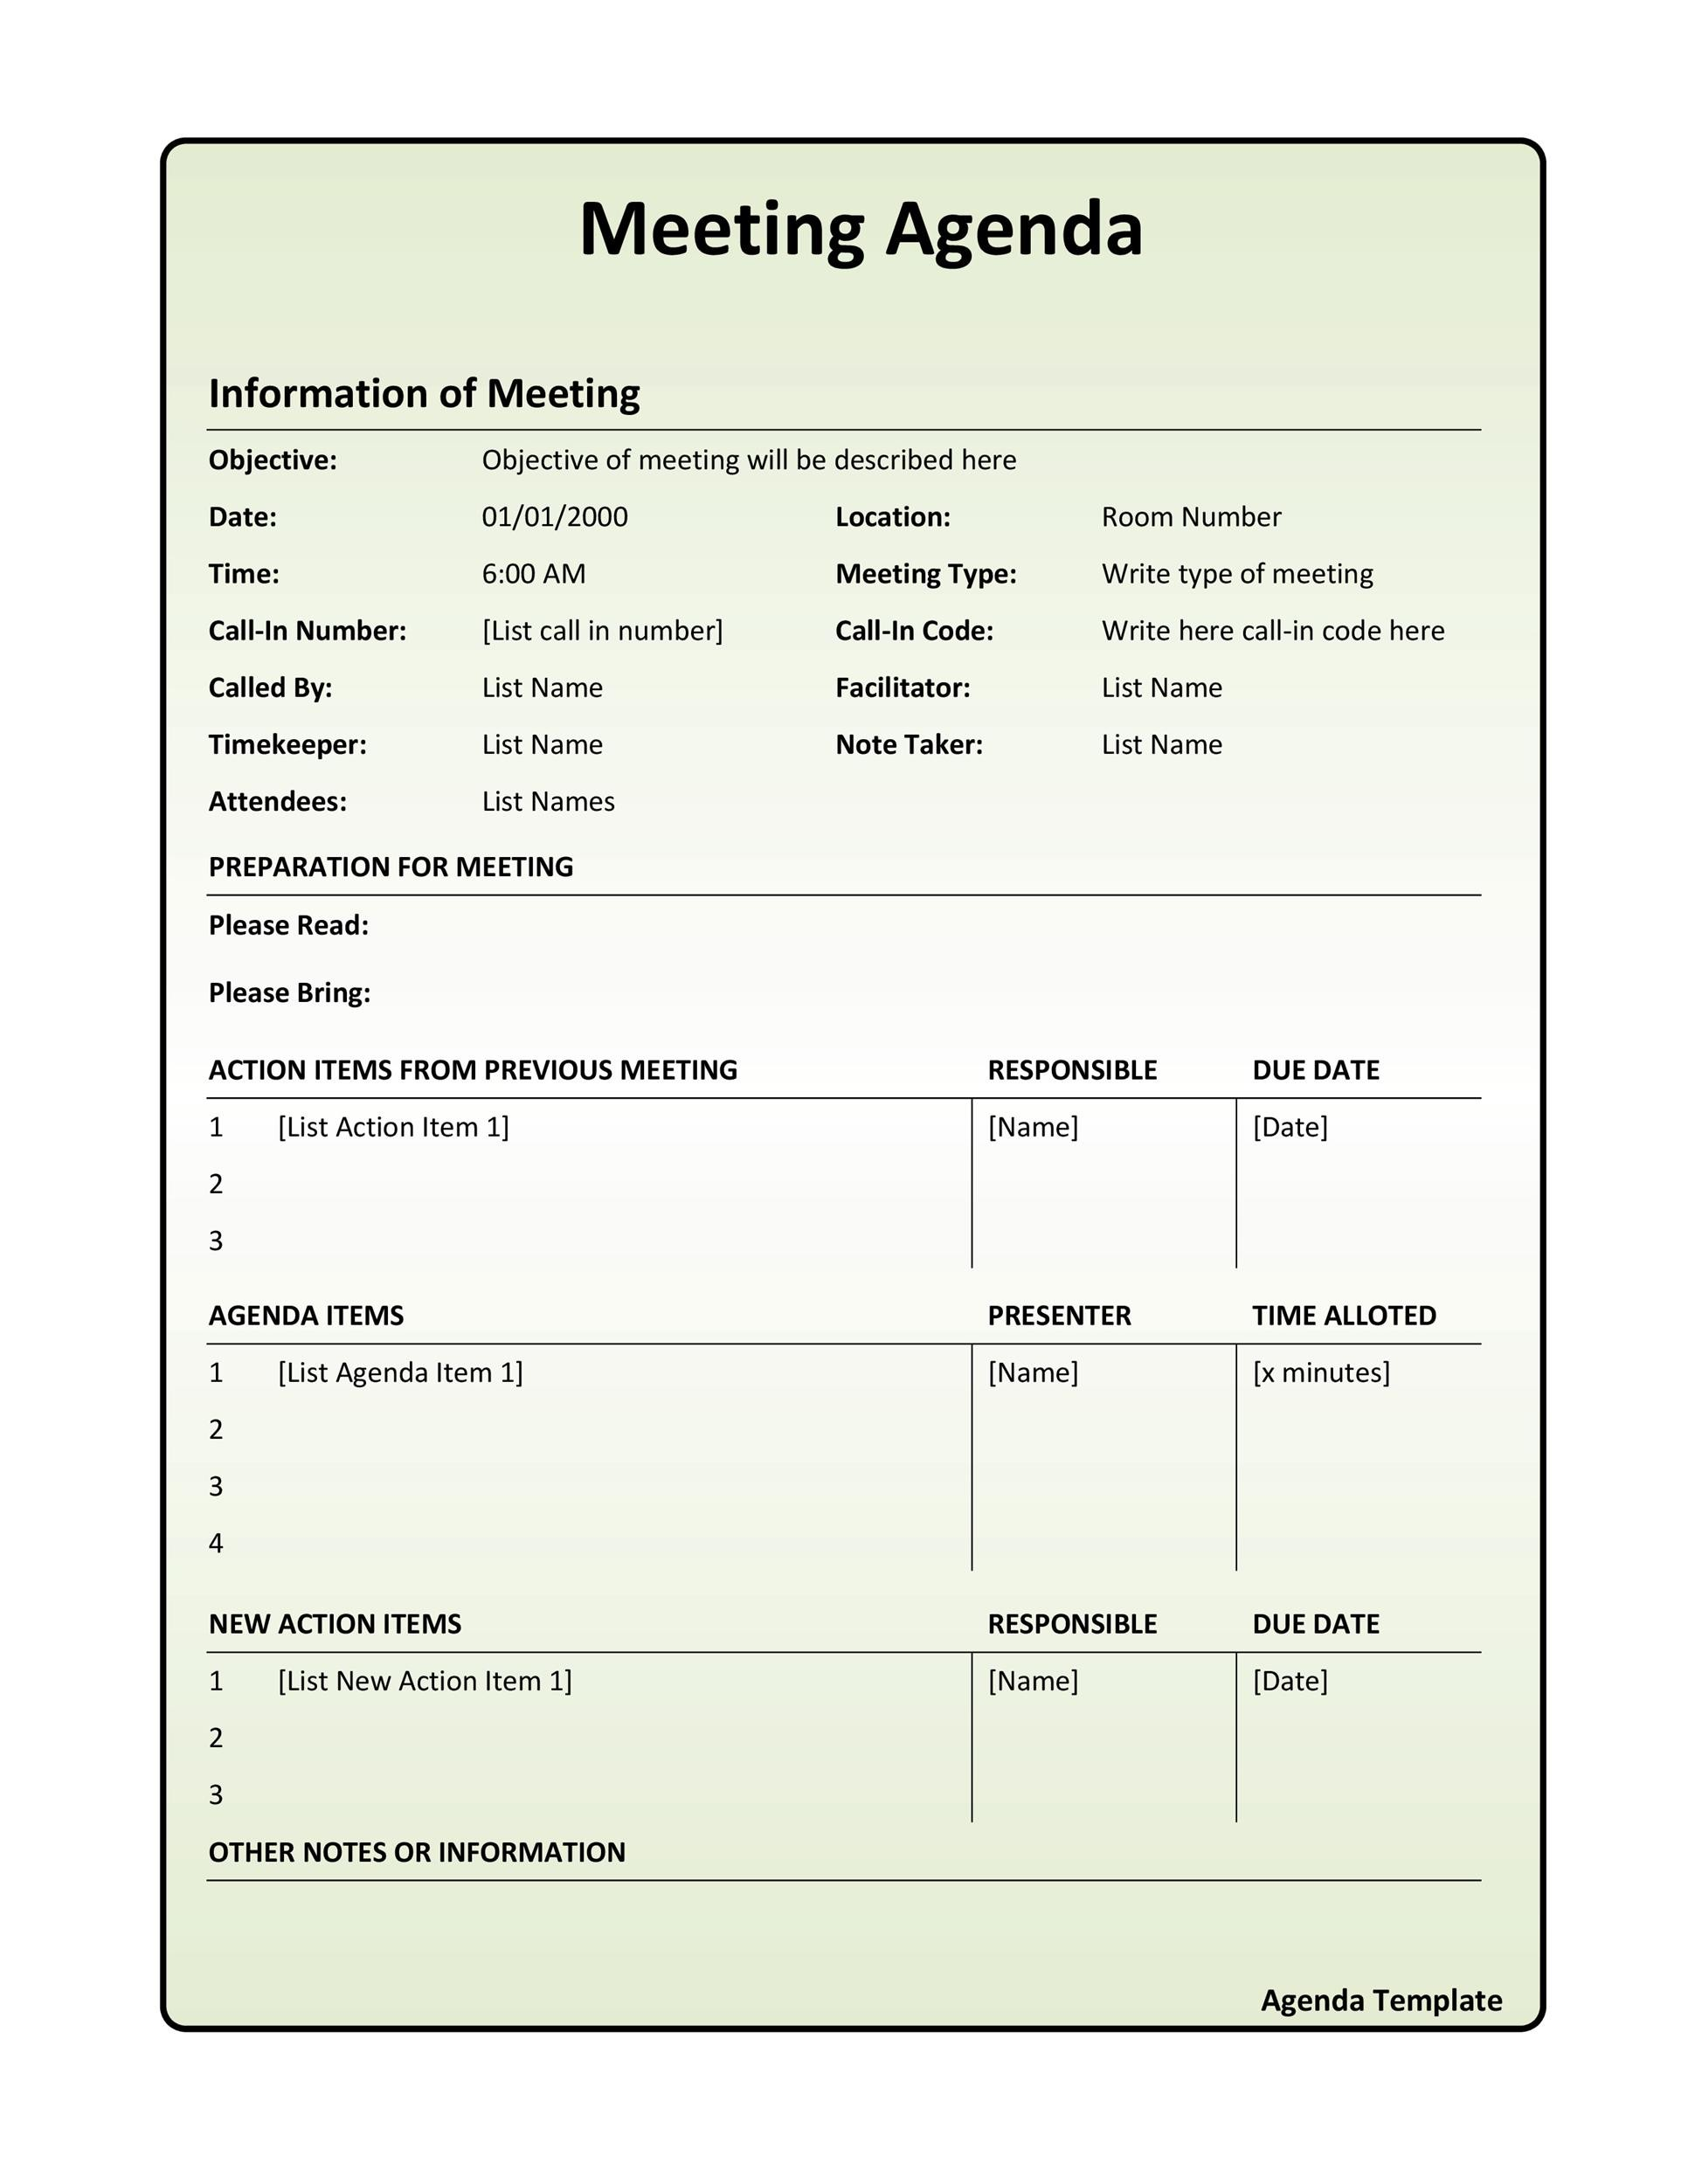 Meeting Agenda Template 07